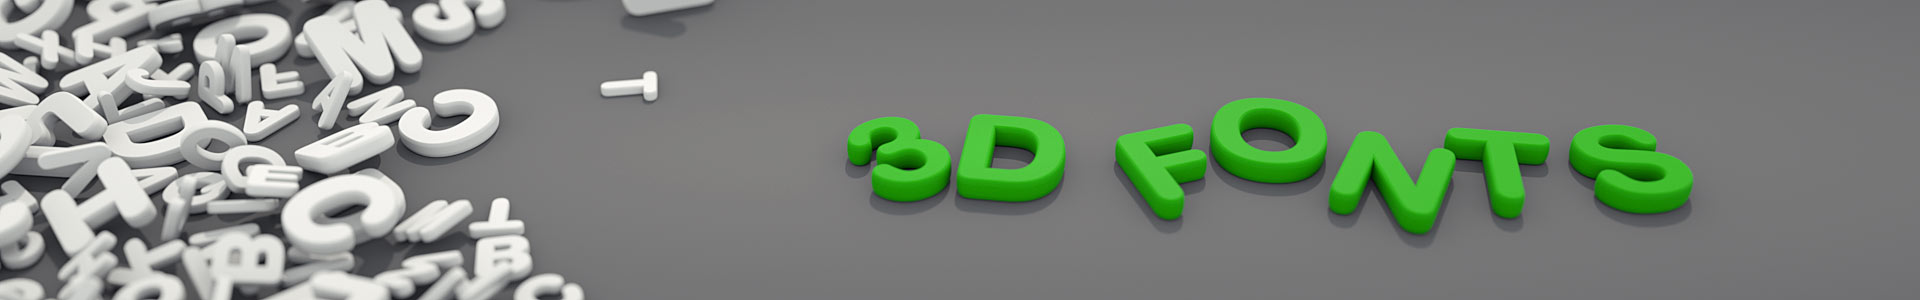 3d-fonts.com - 3d fonts, letters, symbols and signs at affordable prices